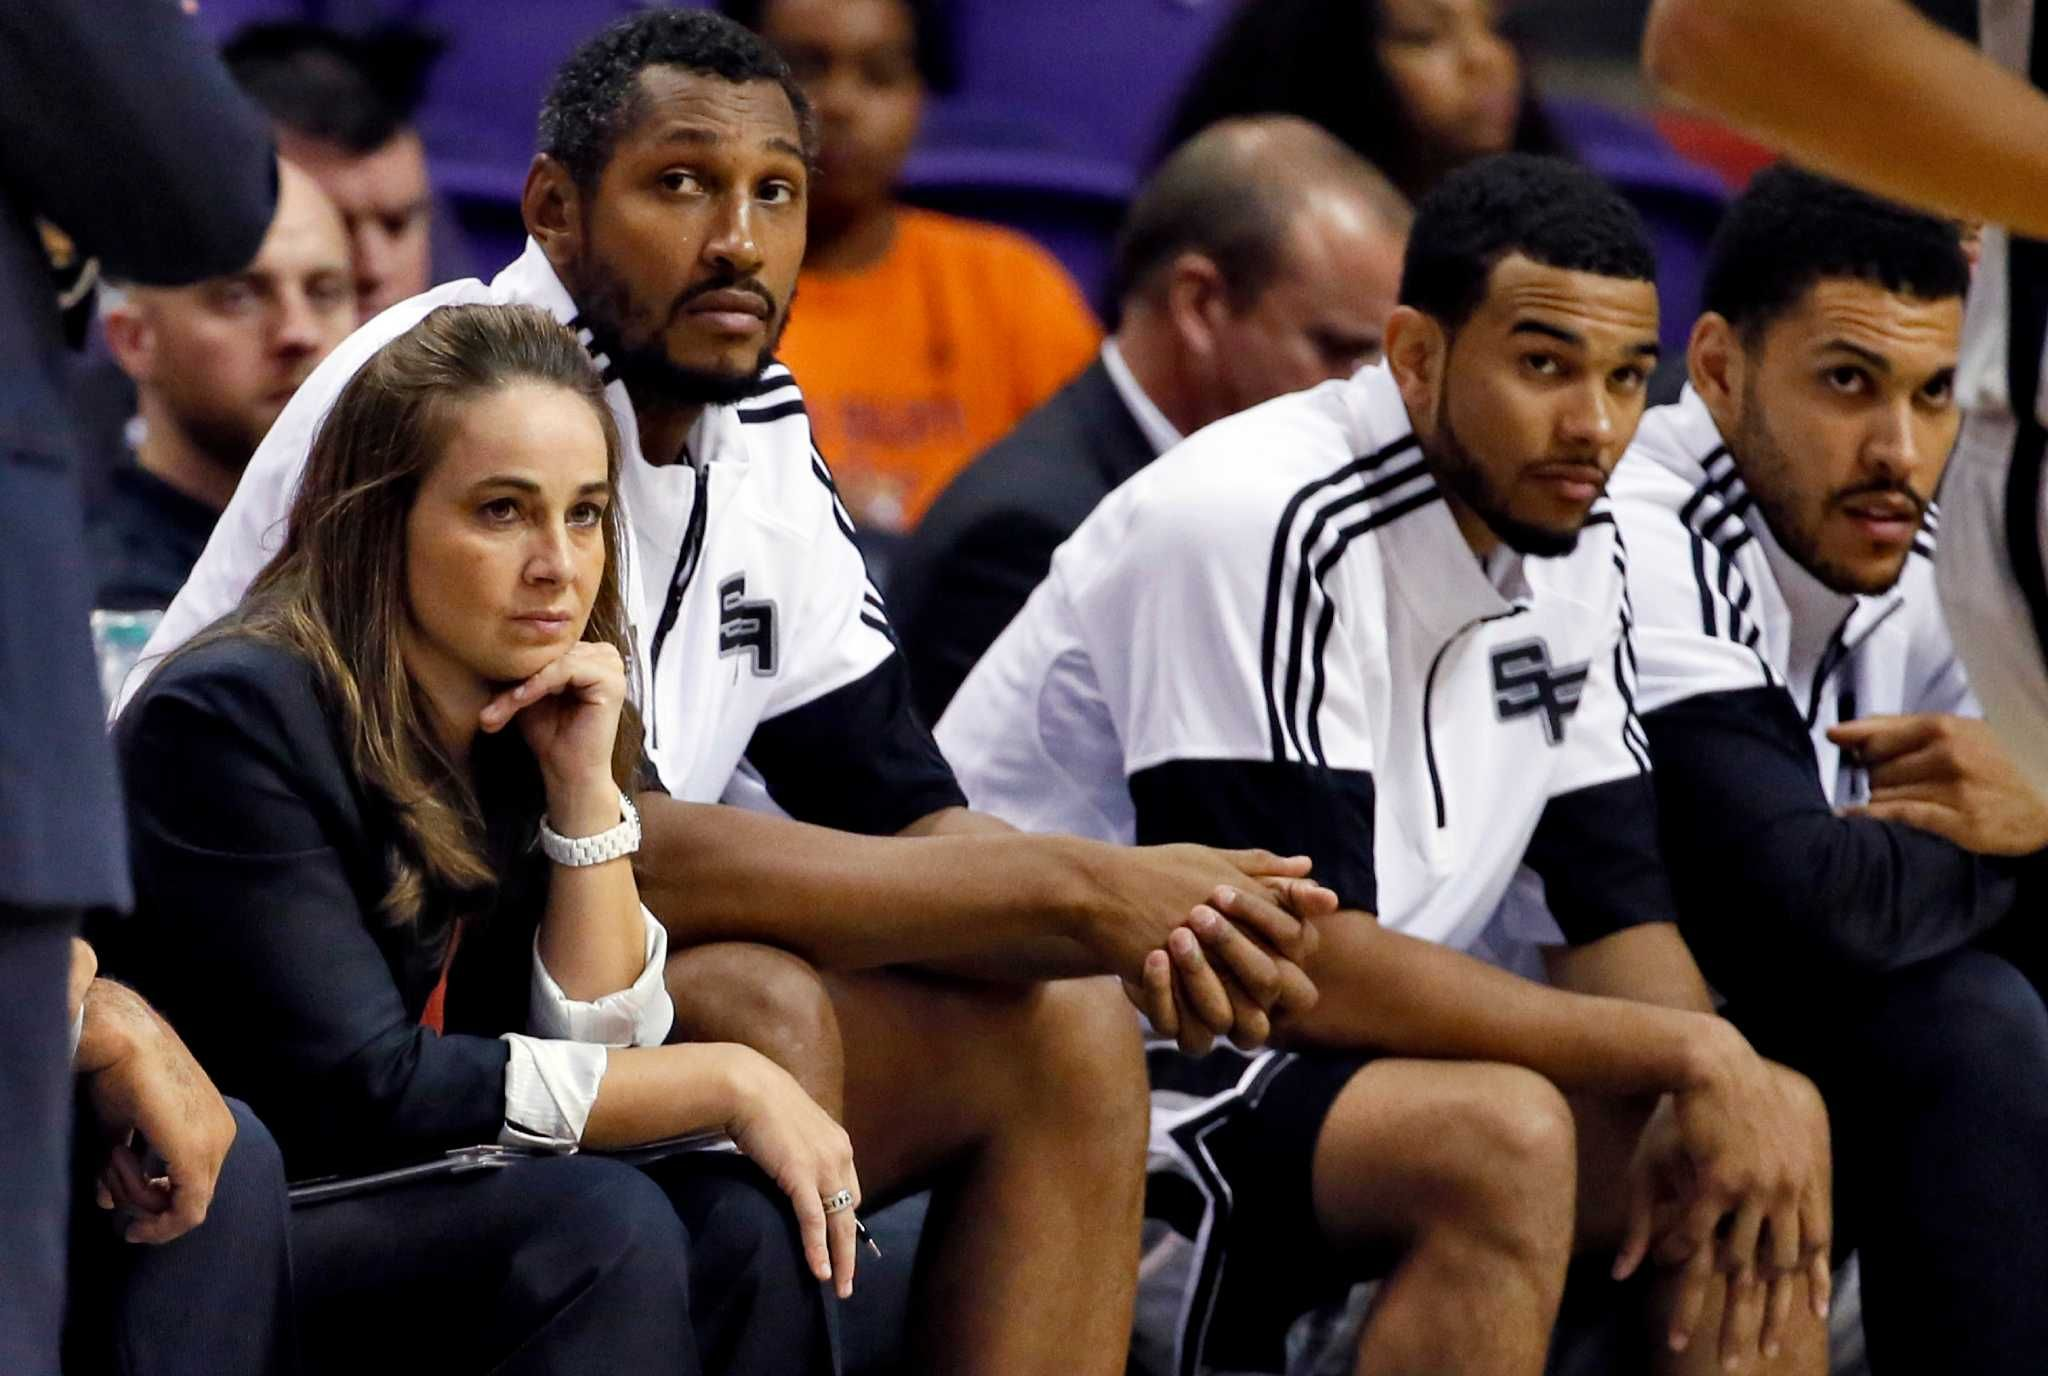 ESPN has named Spurs assistant coach Becky Hammon the 2014 Impact 25 Woman of the Year.